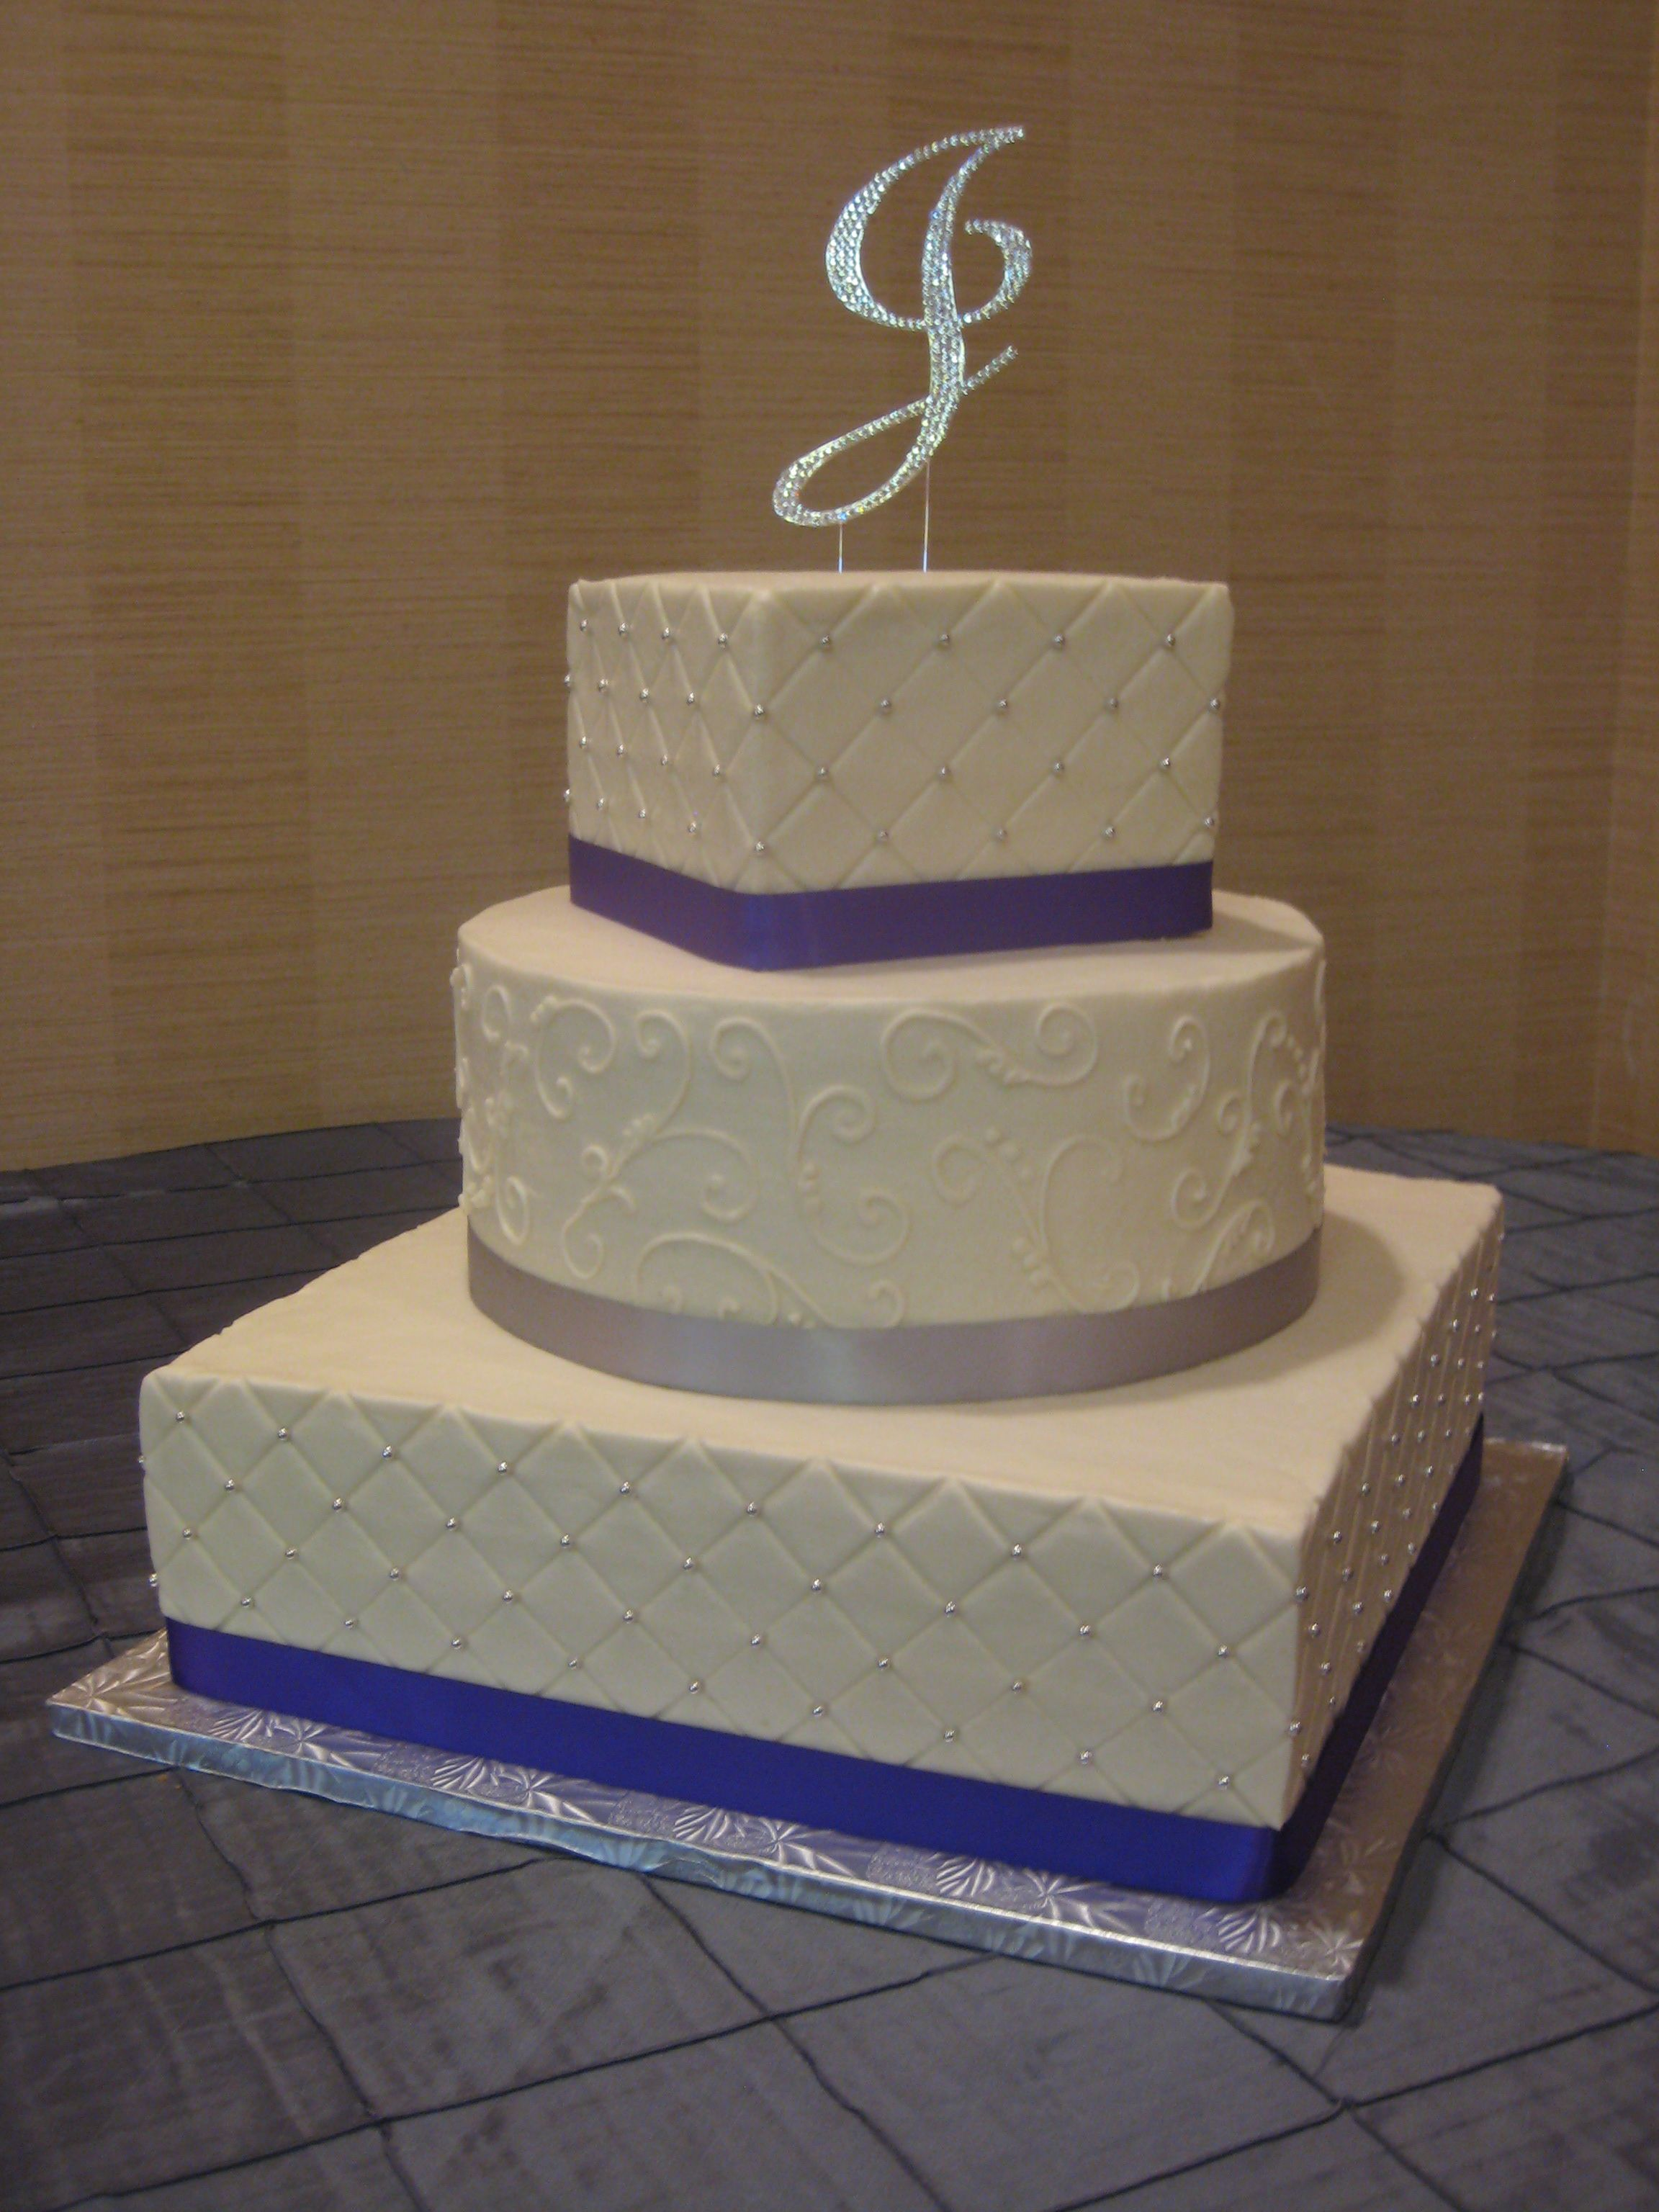 Tier square and round wedding cake with diamond impression and